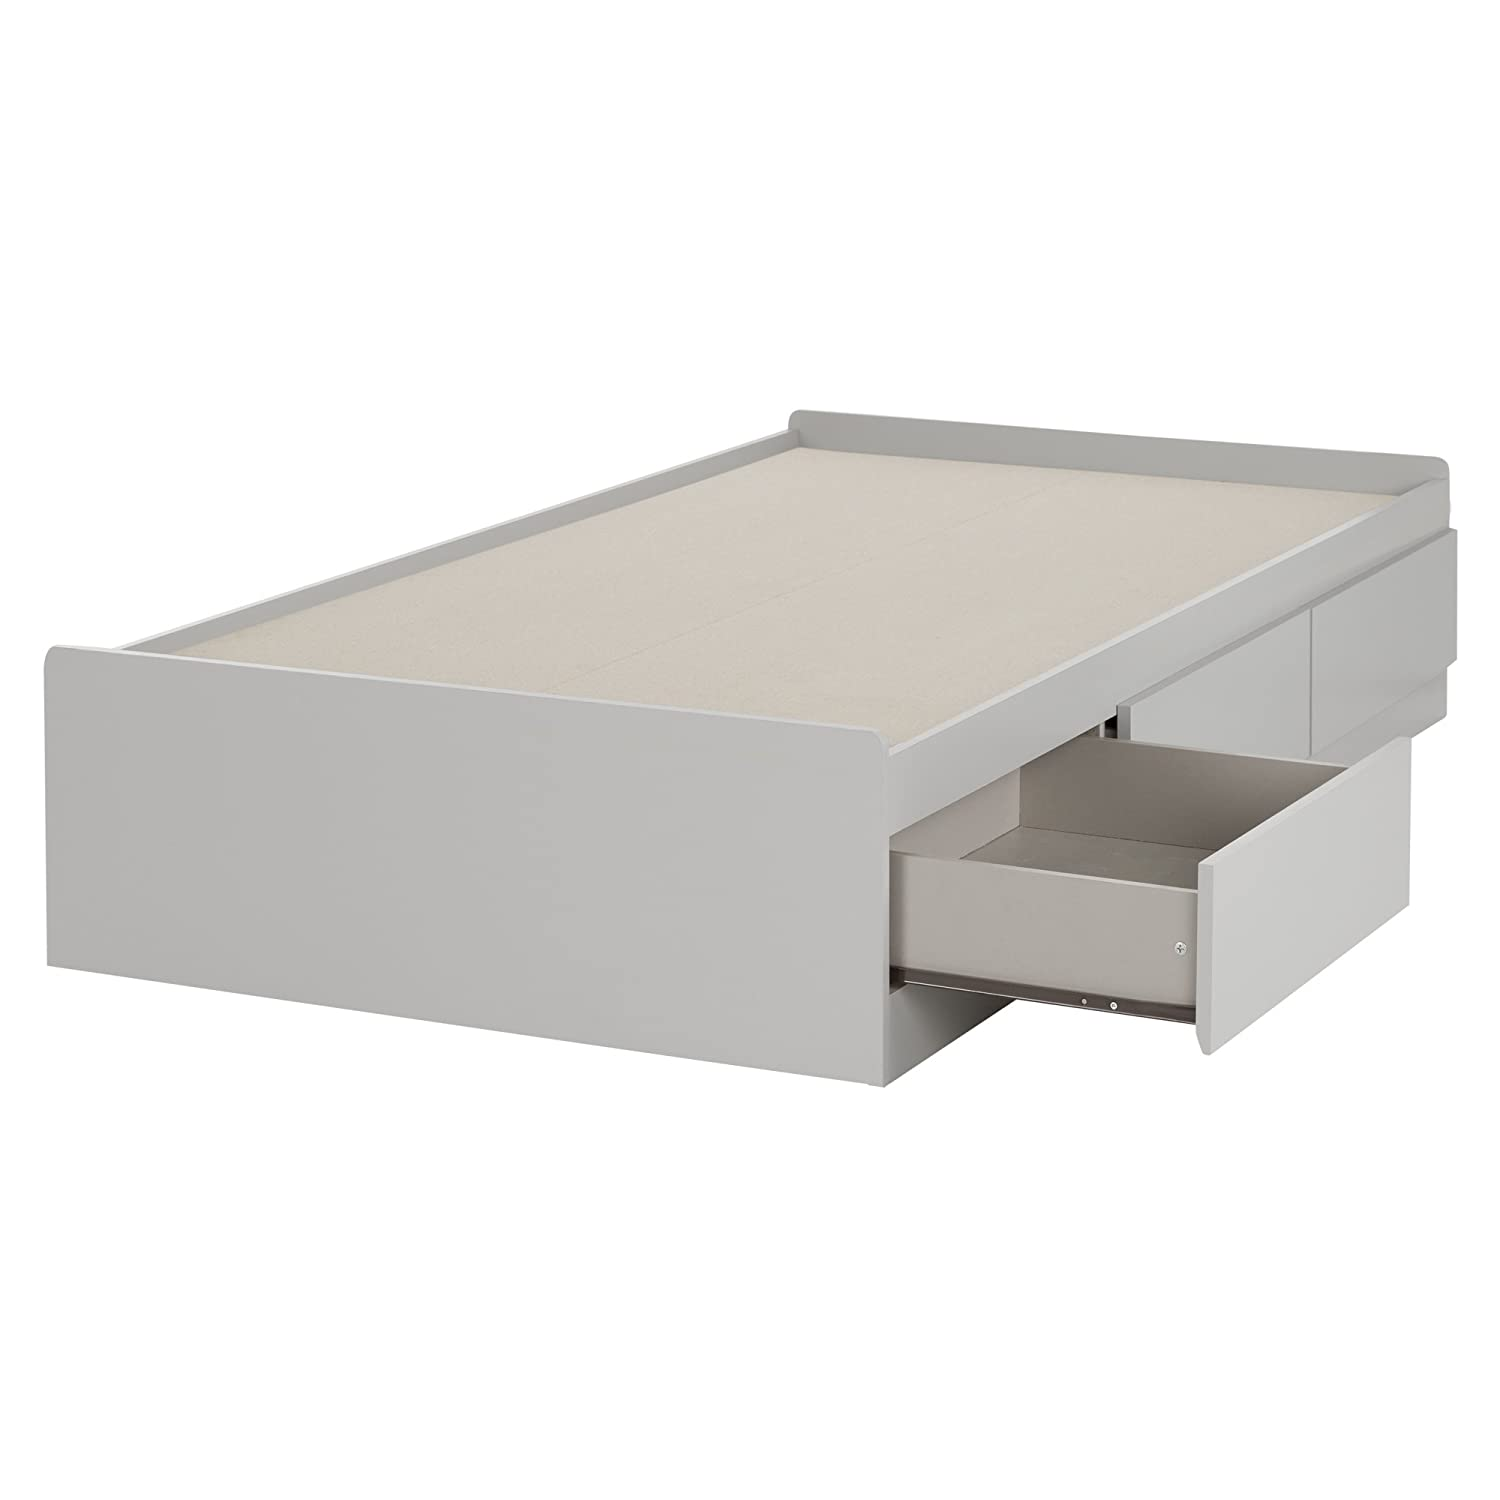 South Shore Furniture 10578 39 Cookie Mates Bed with 3 Drawers, Twin, Soft Gray